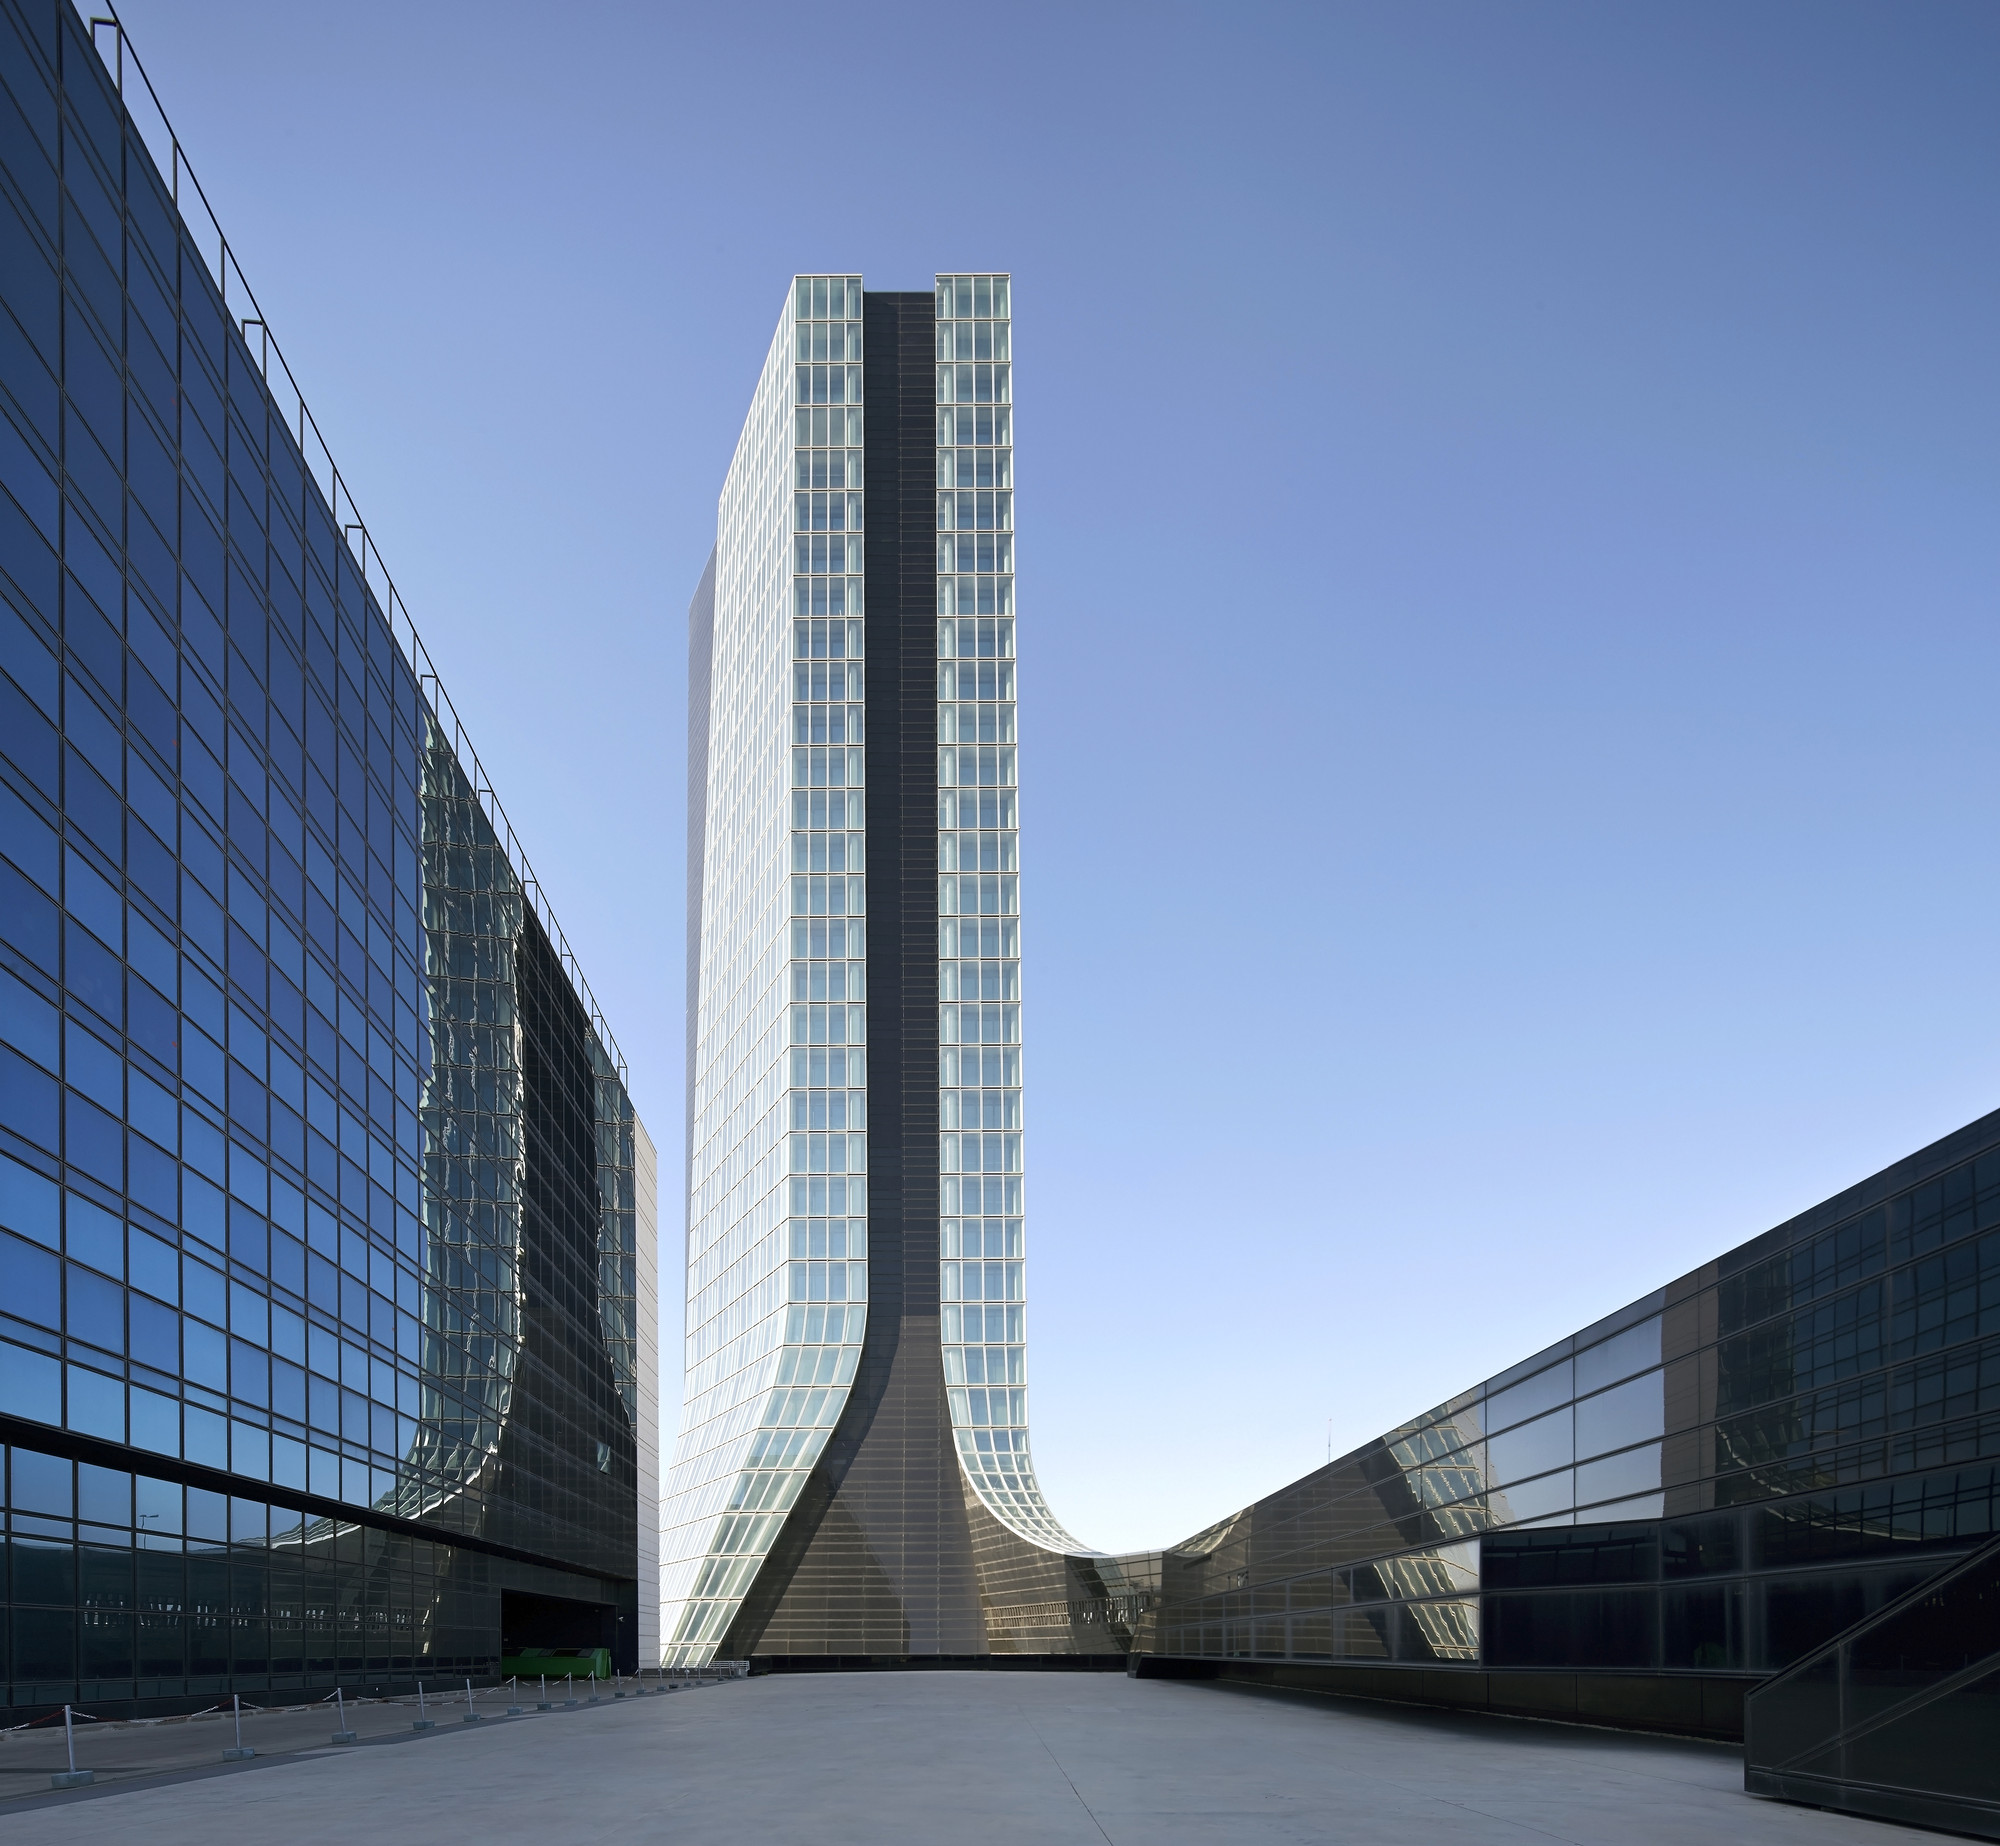 Gallery of zaha hadid architects 39 first built tower cma cgm headquarters 16 - Cma cgm france head office ...